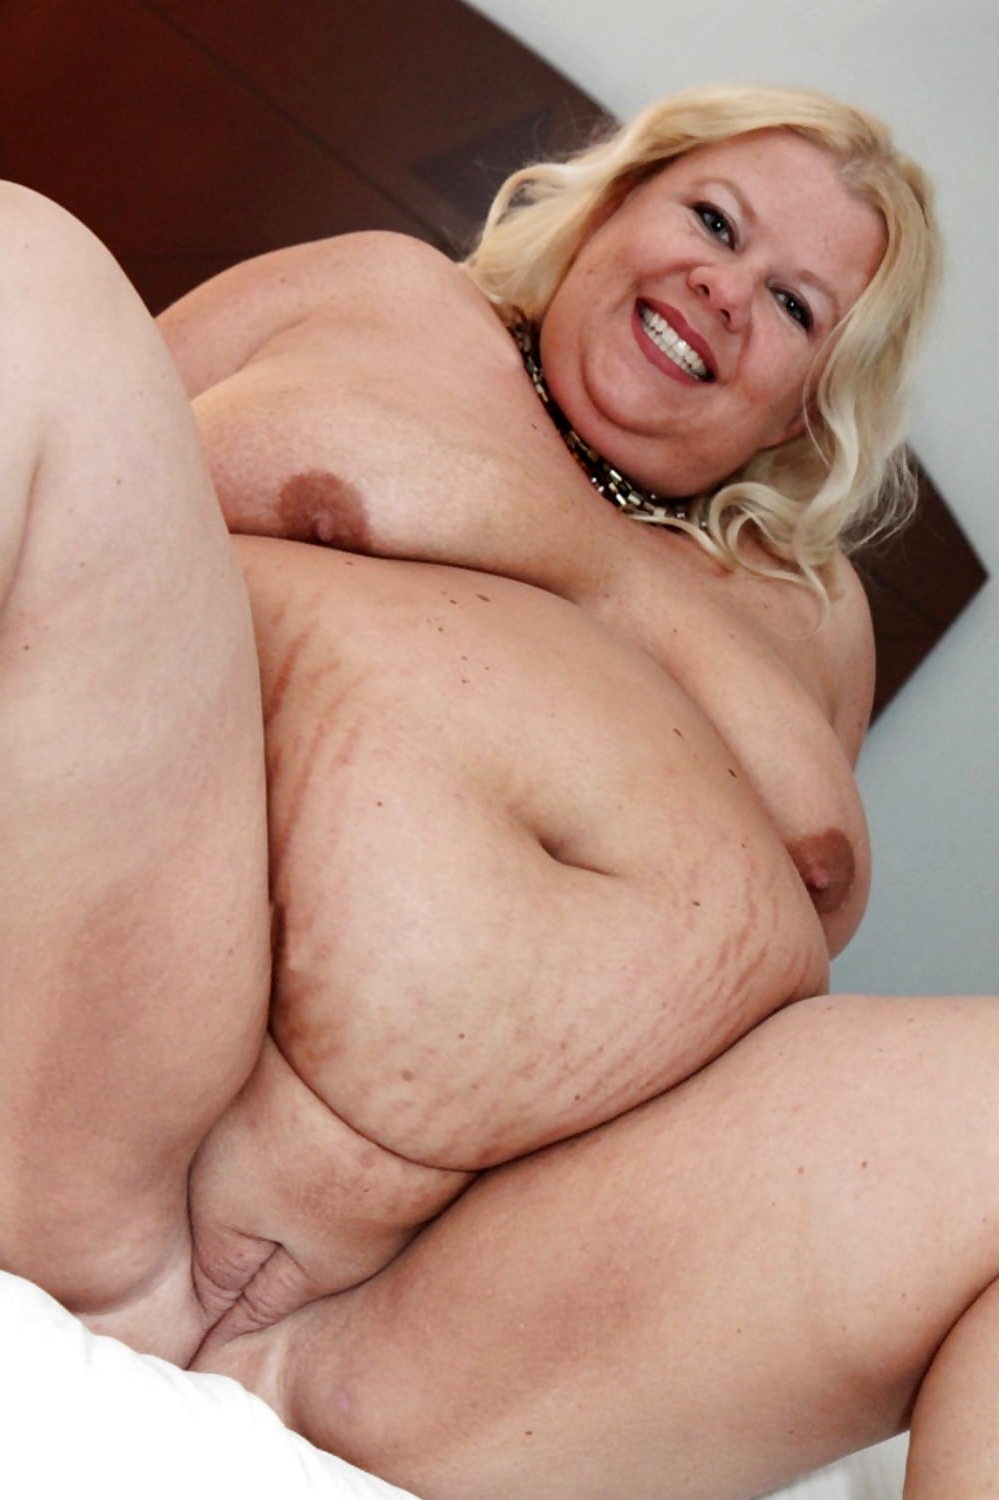 Naked fat women images